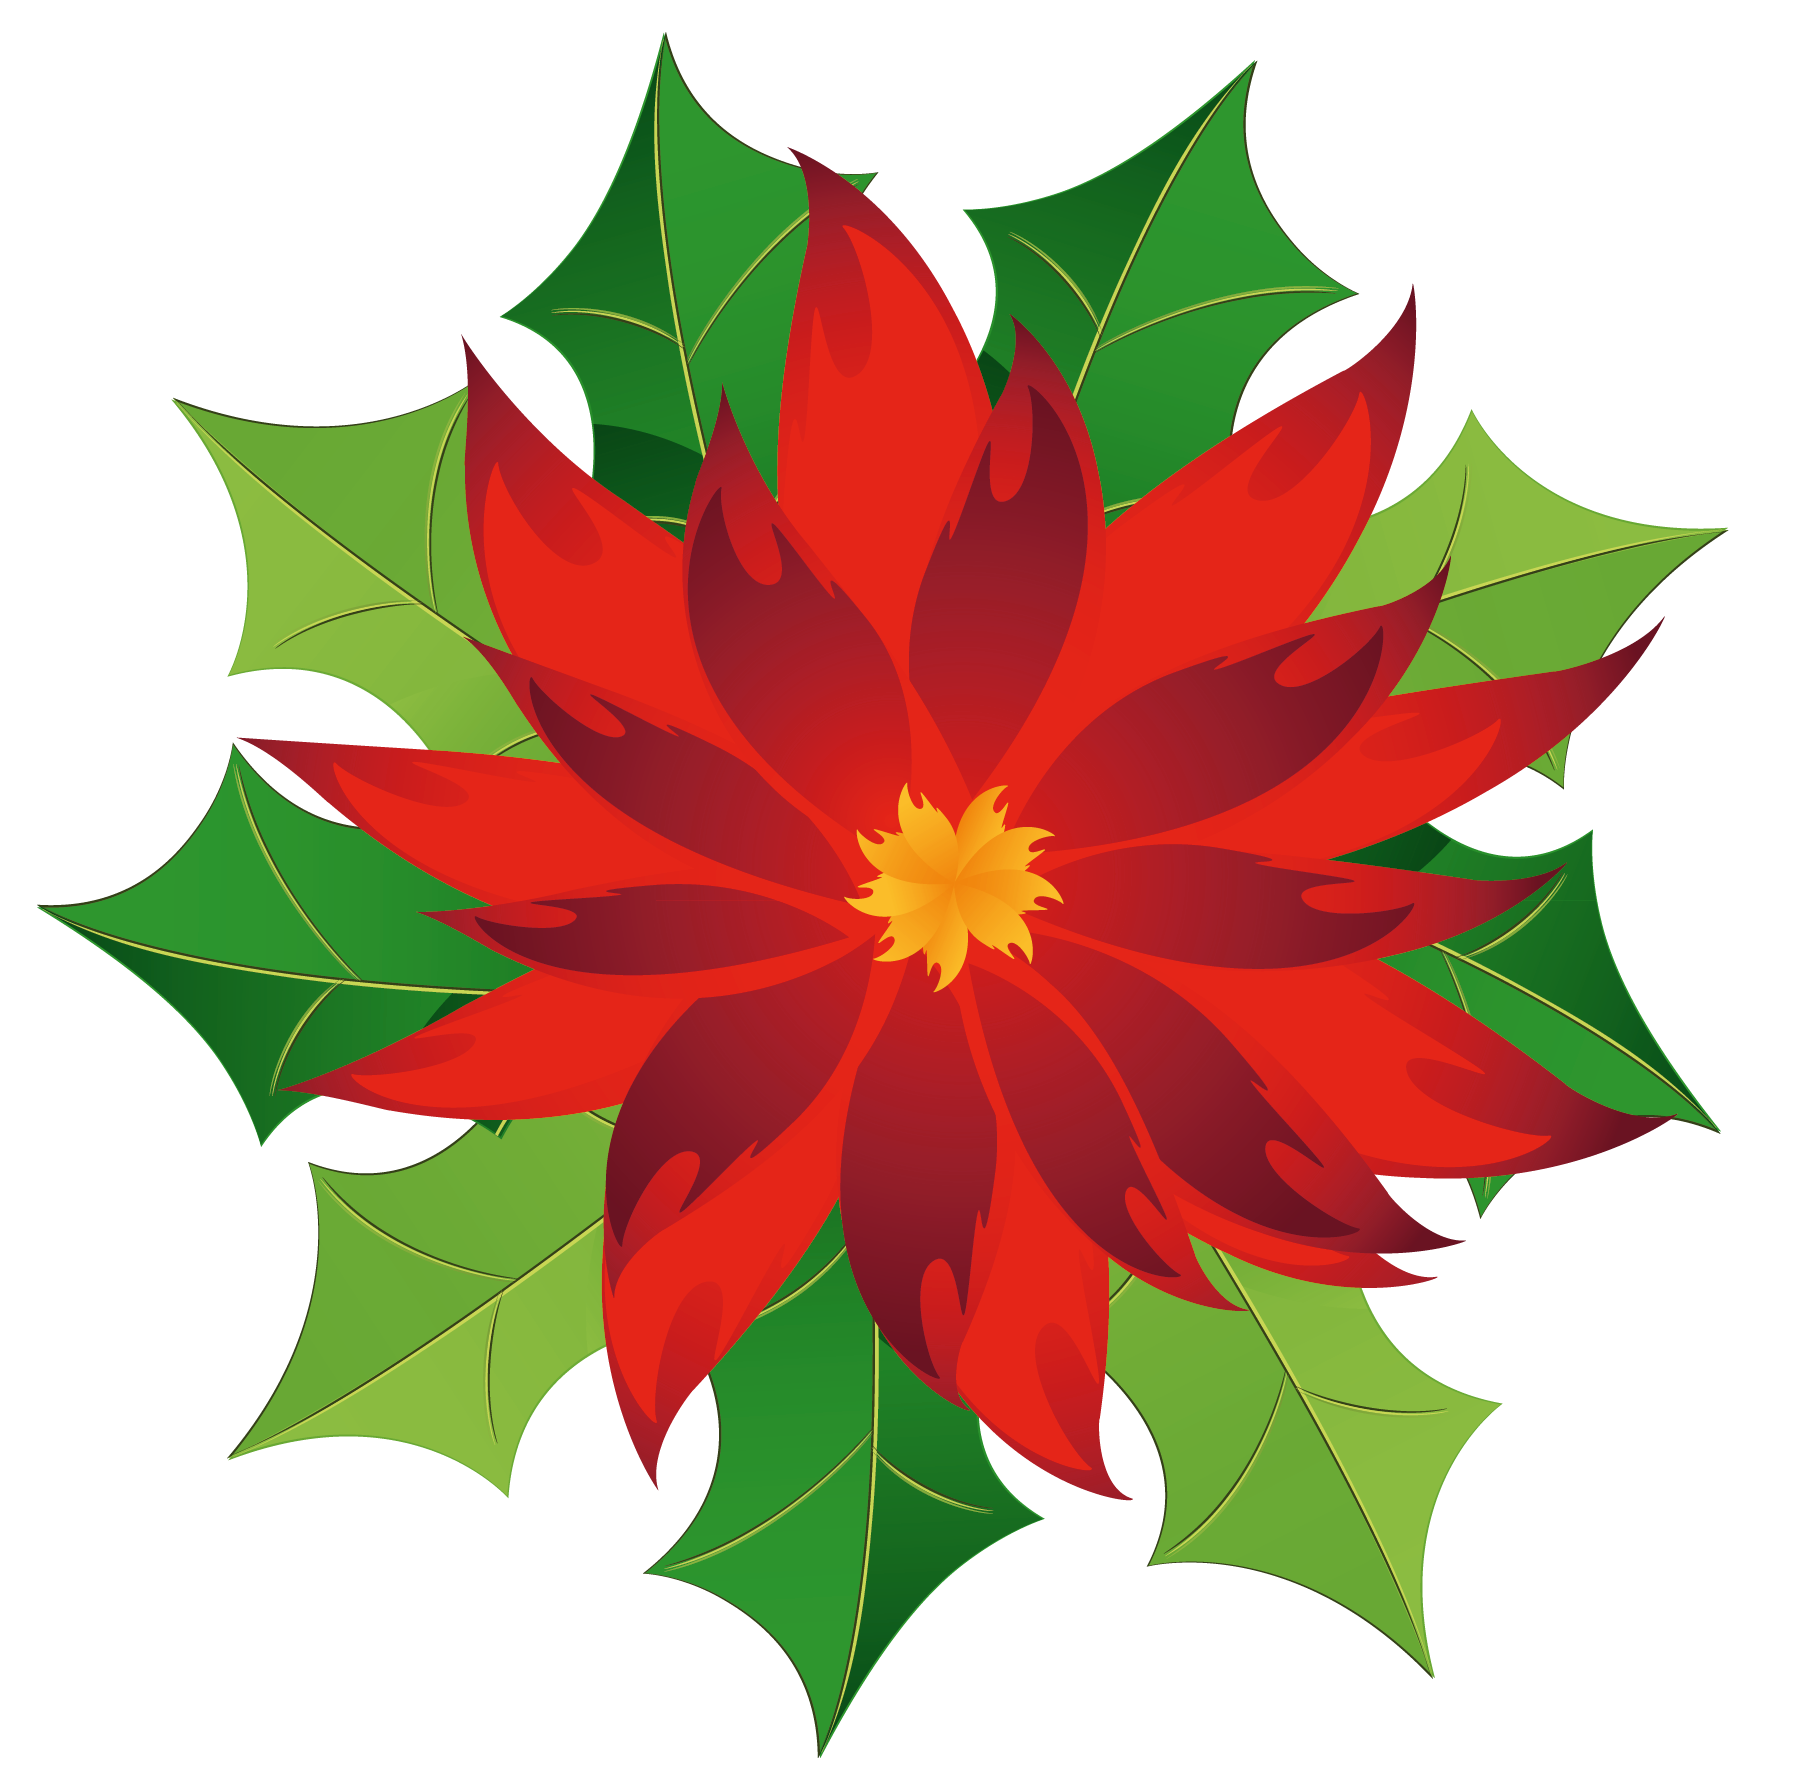 Poinsettia clipart #1, Download drawings